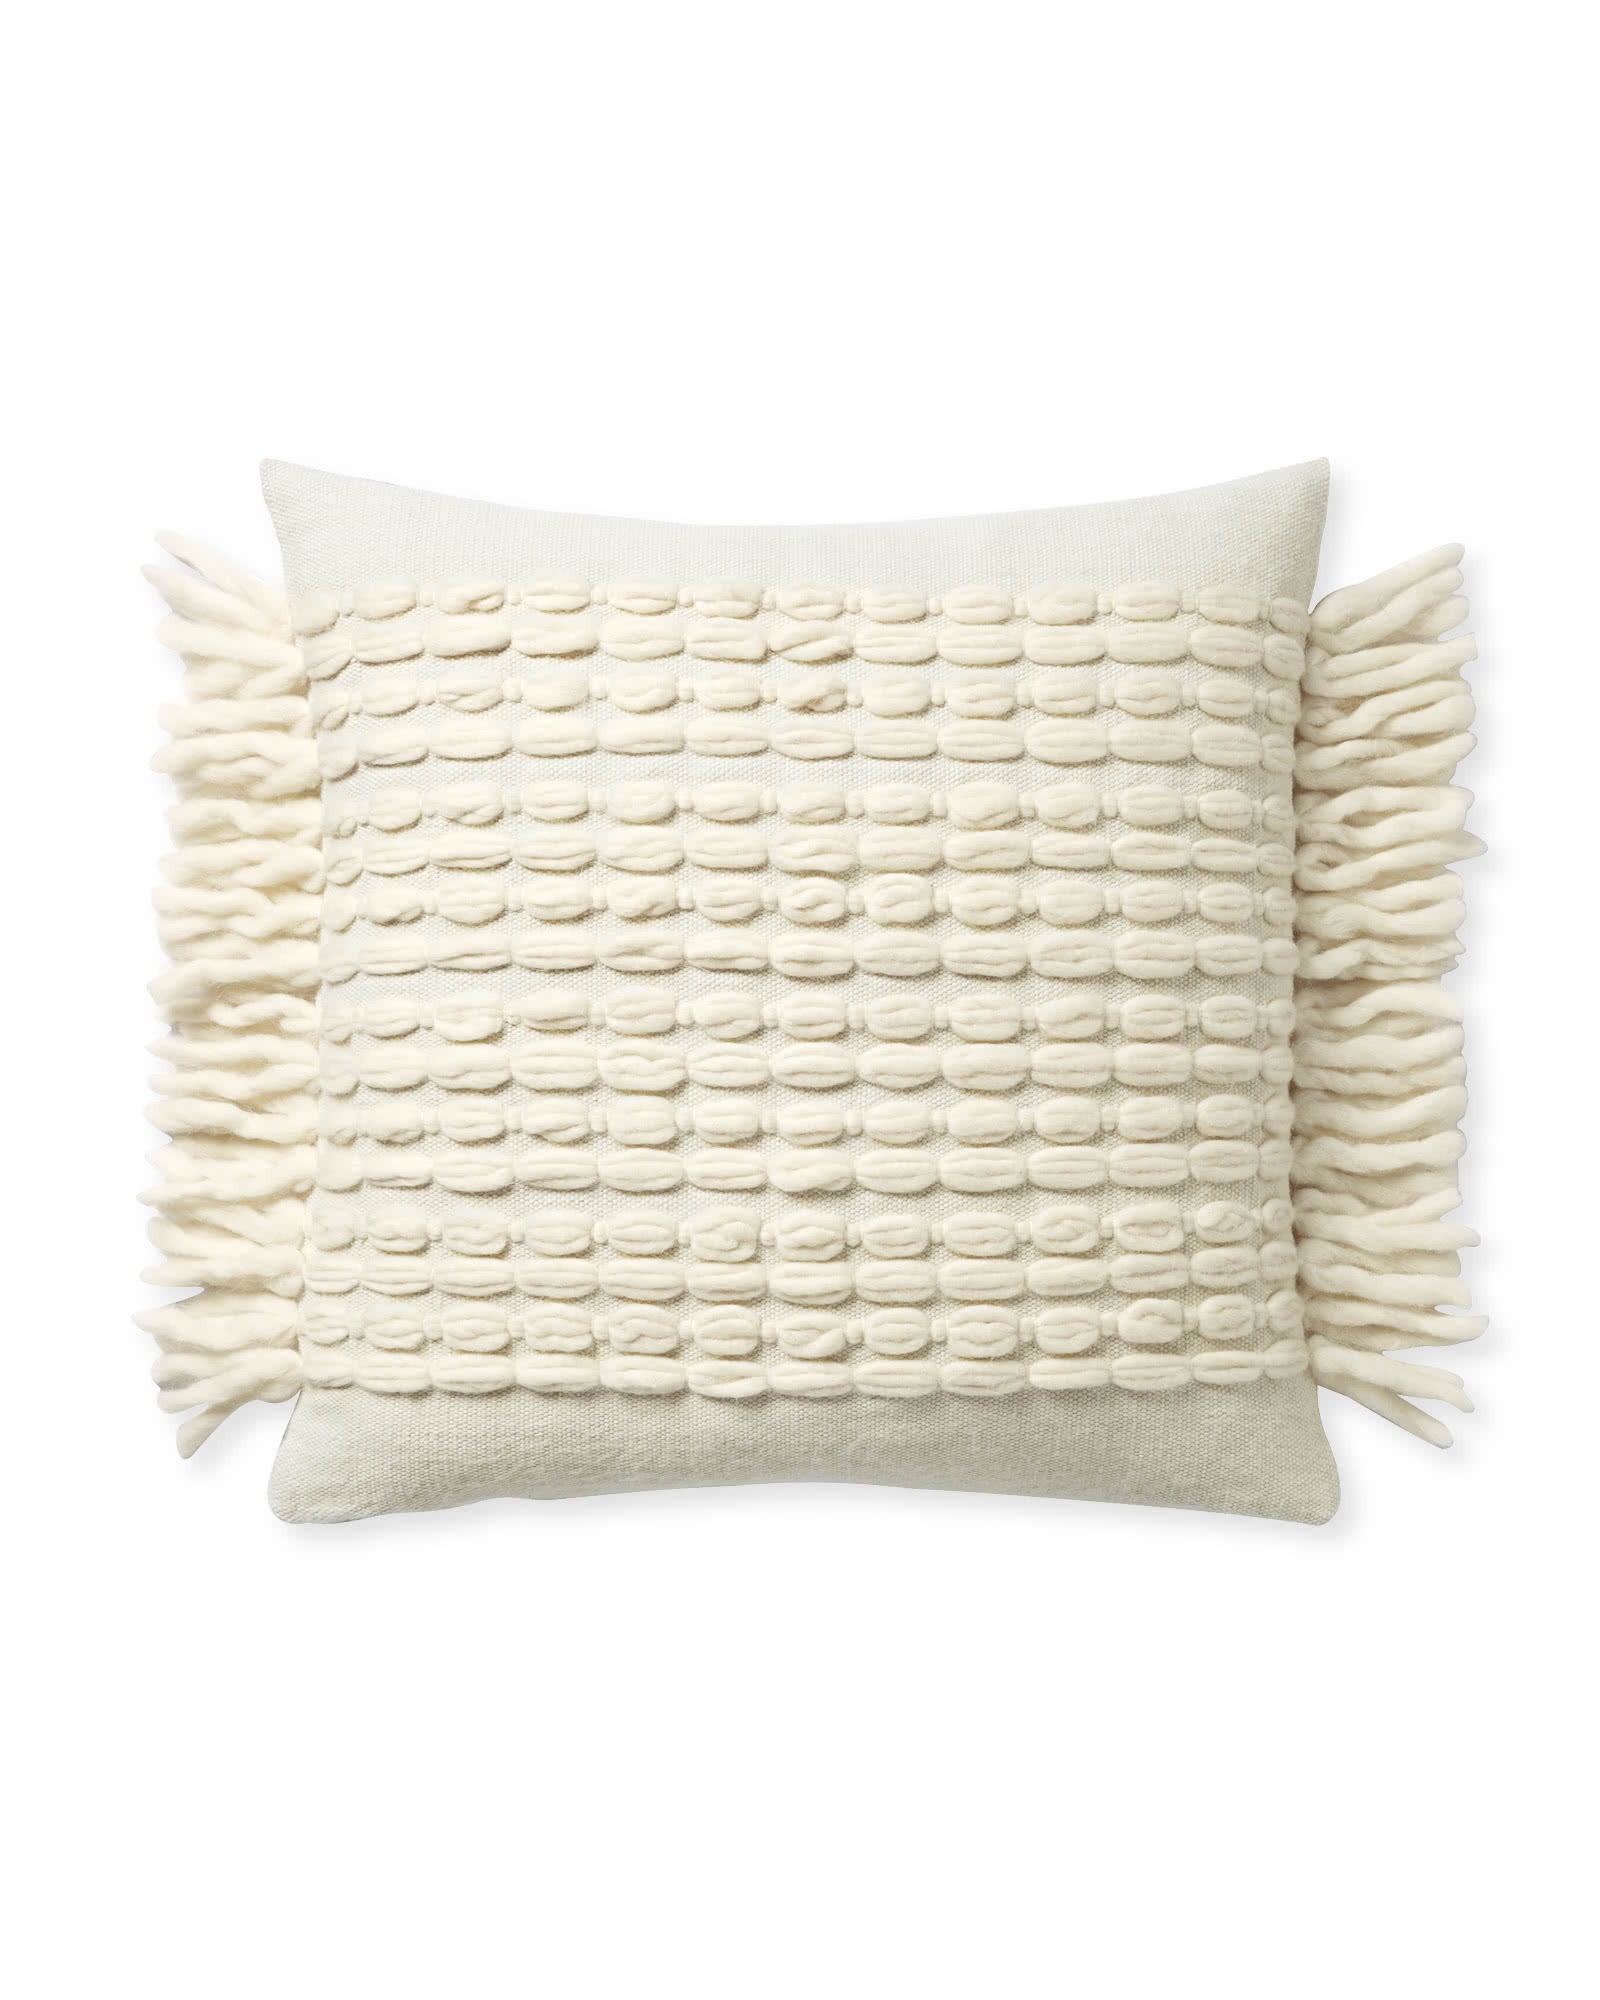 Winter Beach Pillow Cover, Ivory